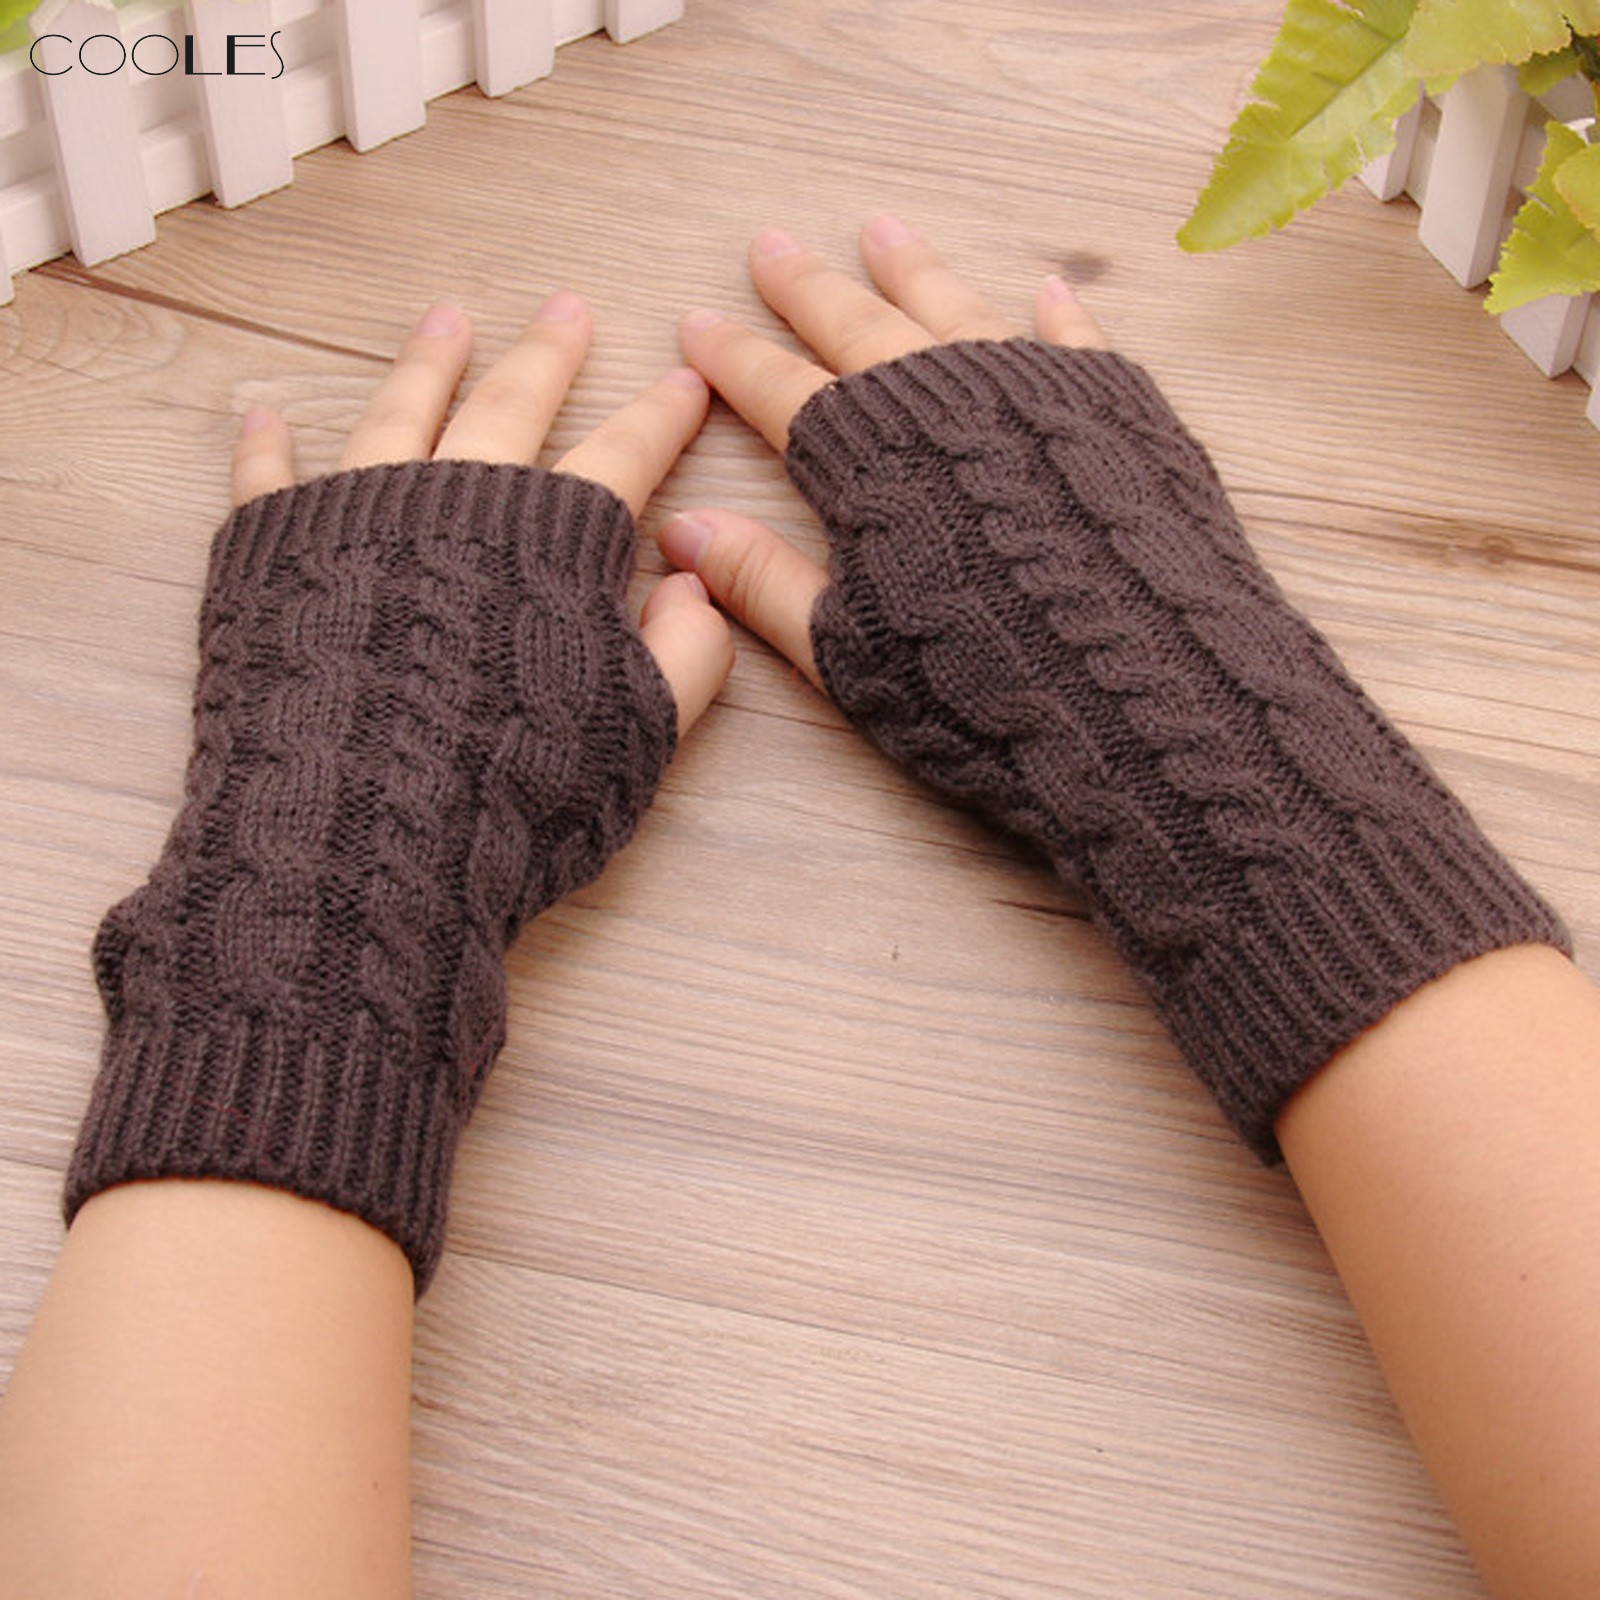 Gloves Women's Winter Knitted Stretch Keep Warm Riding Gloves With Mobile Phone Guantes Pull Femme Hiver перчатки зимние #2587